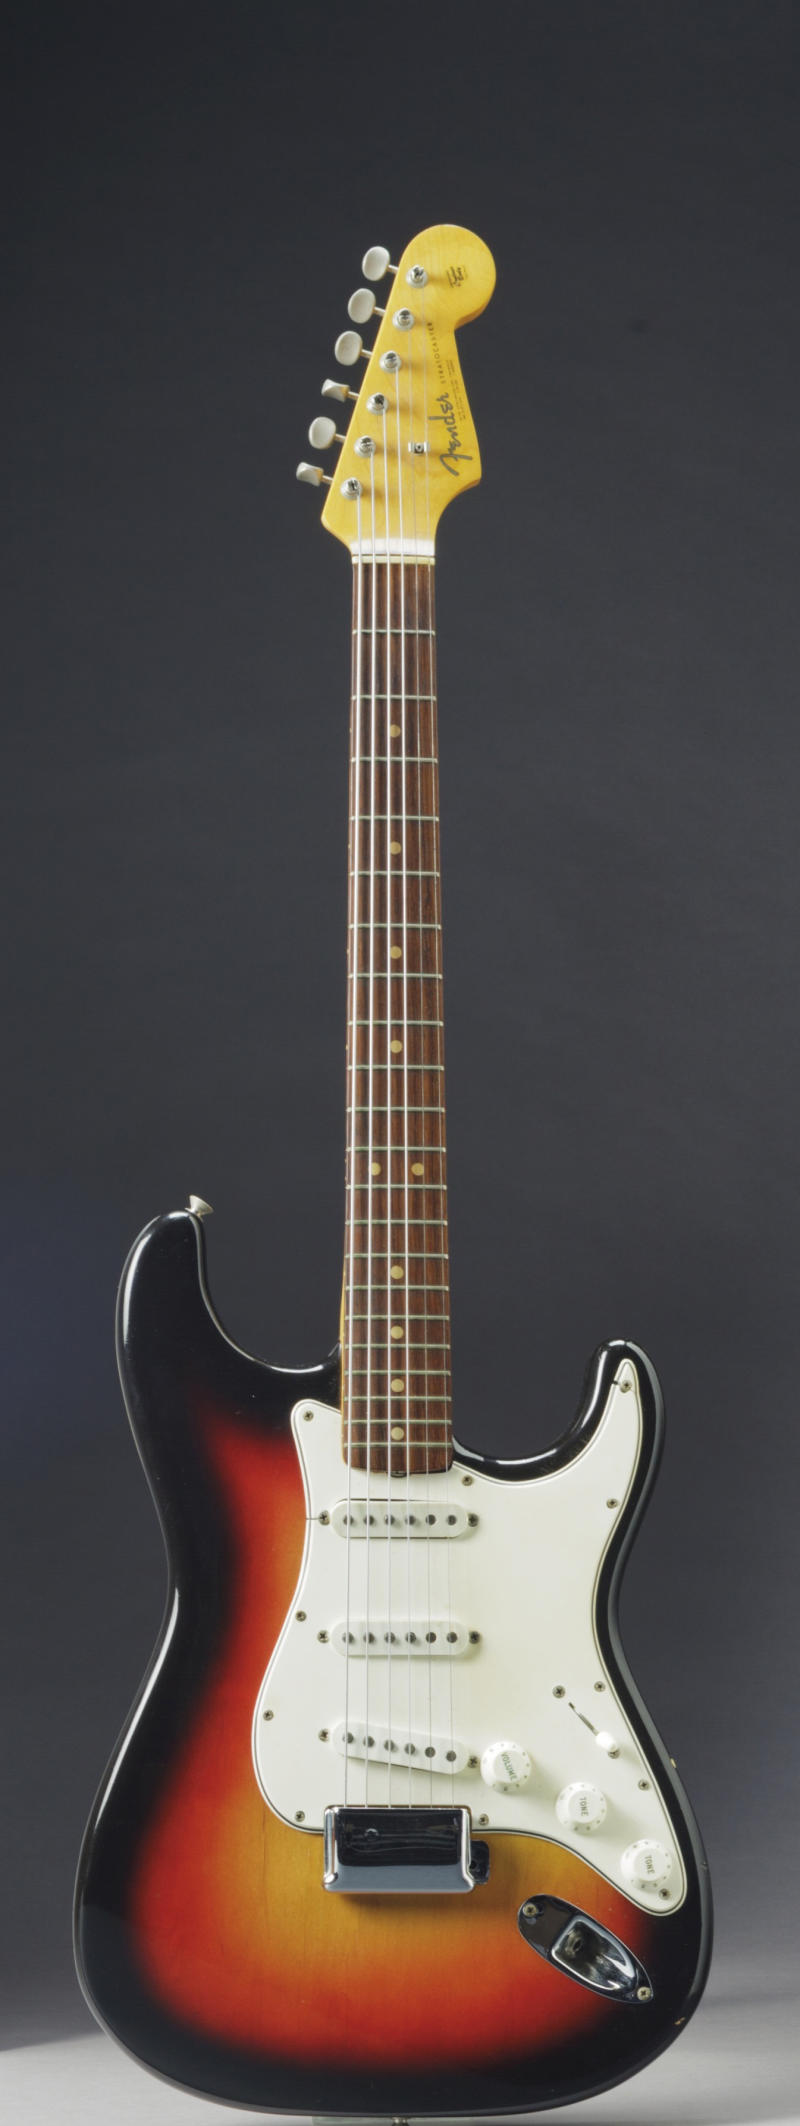 AP: Dylan's Newport guitar to be auctioned in NYC